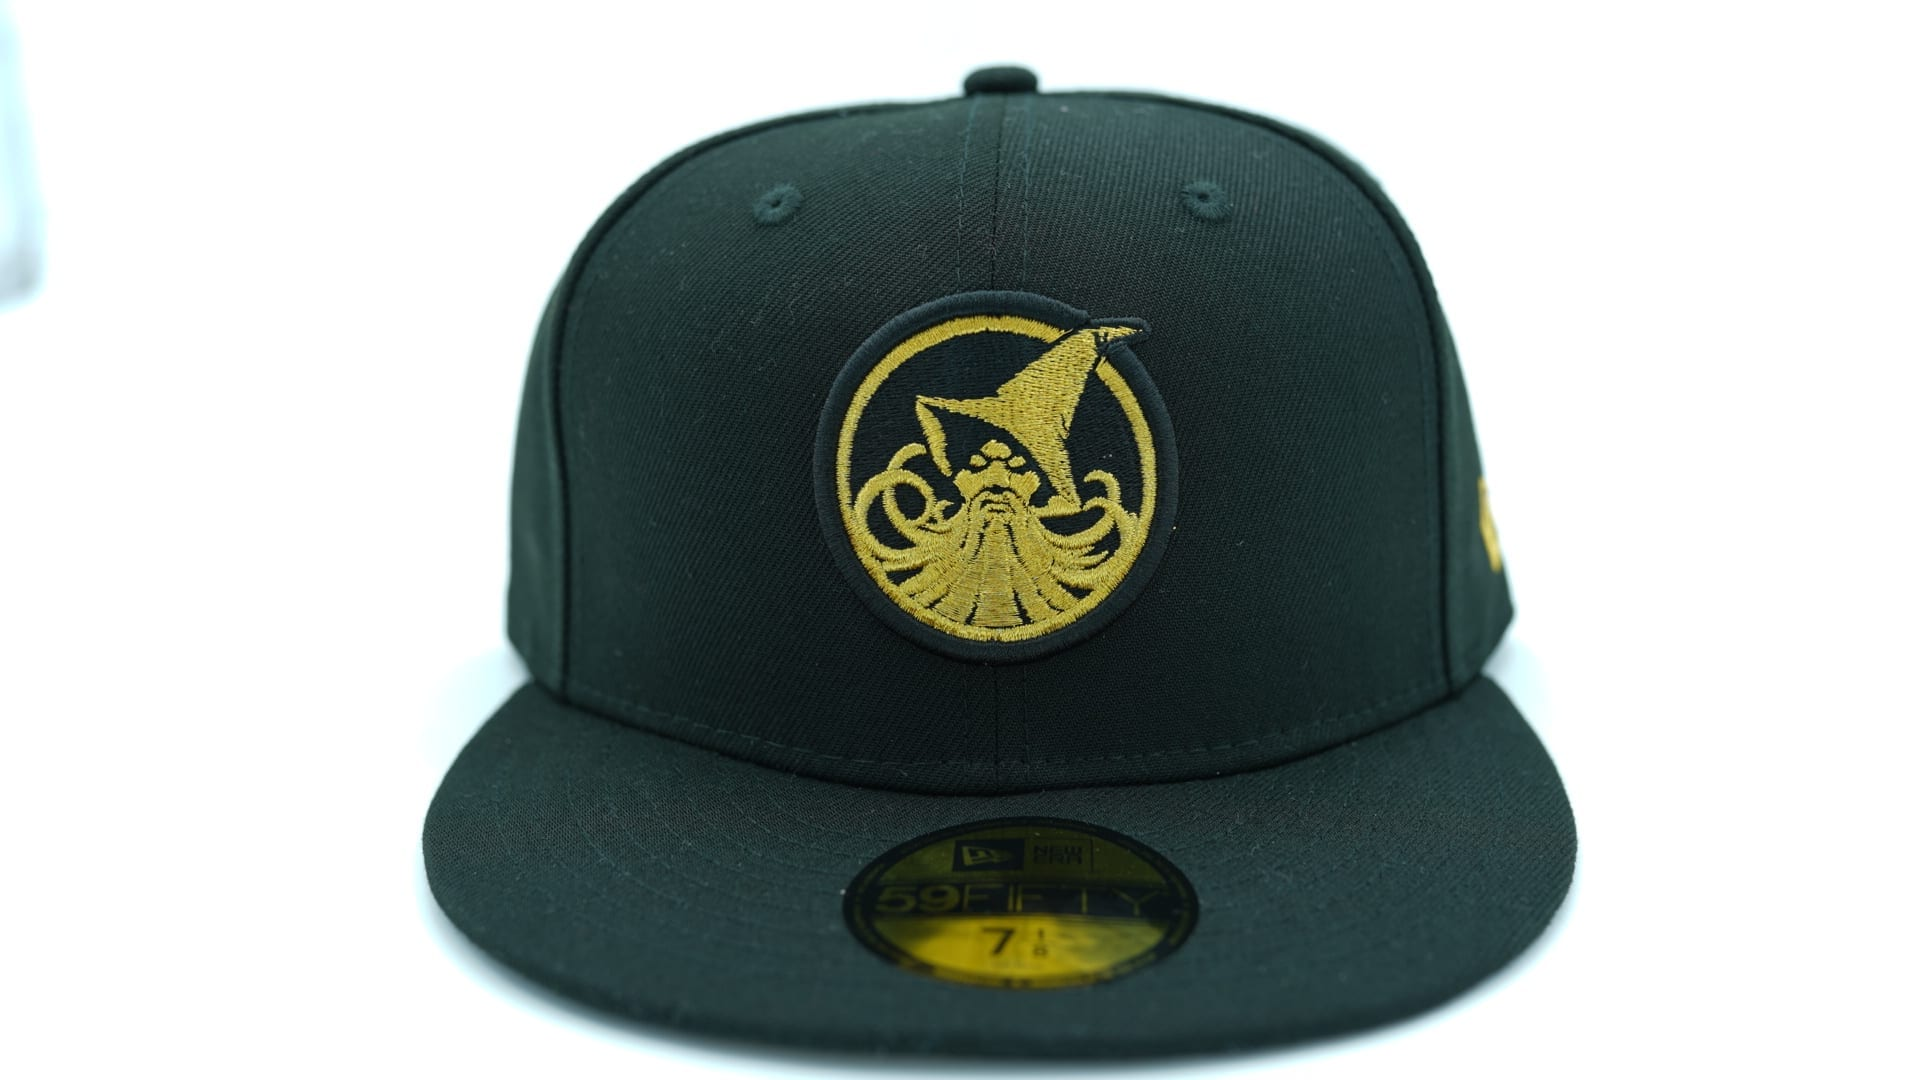 Tampa Yankees Authentic Collection On-Field Navy 59Fifty Fitted Baseball Cap by NEW ERA x MiLB